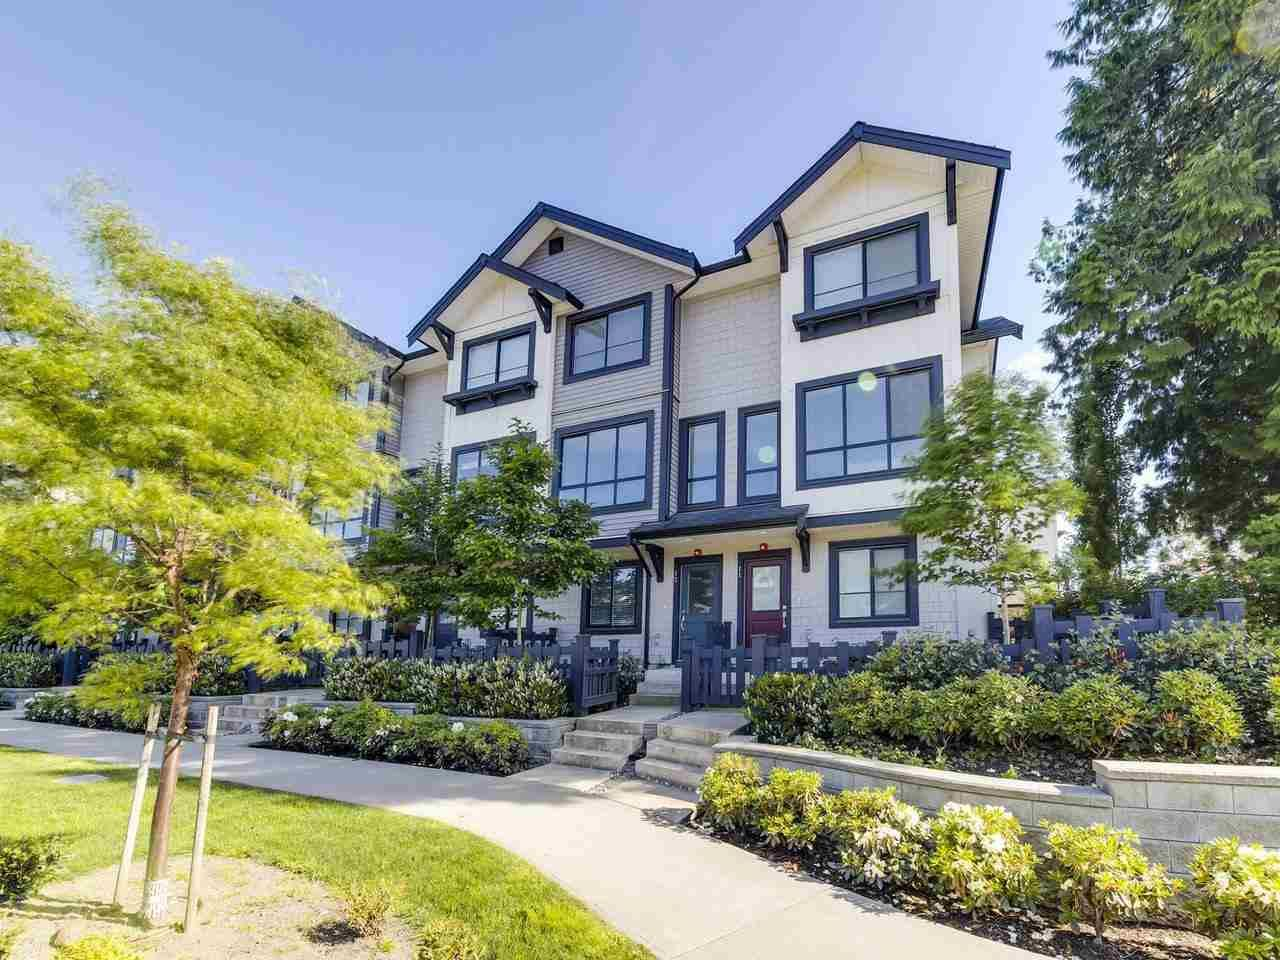 Main Photo: 12 8570 204 STREET in Langley: Willoughby Heights Townhouse for sale : MLS®# R2581391